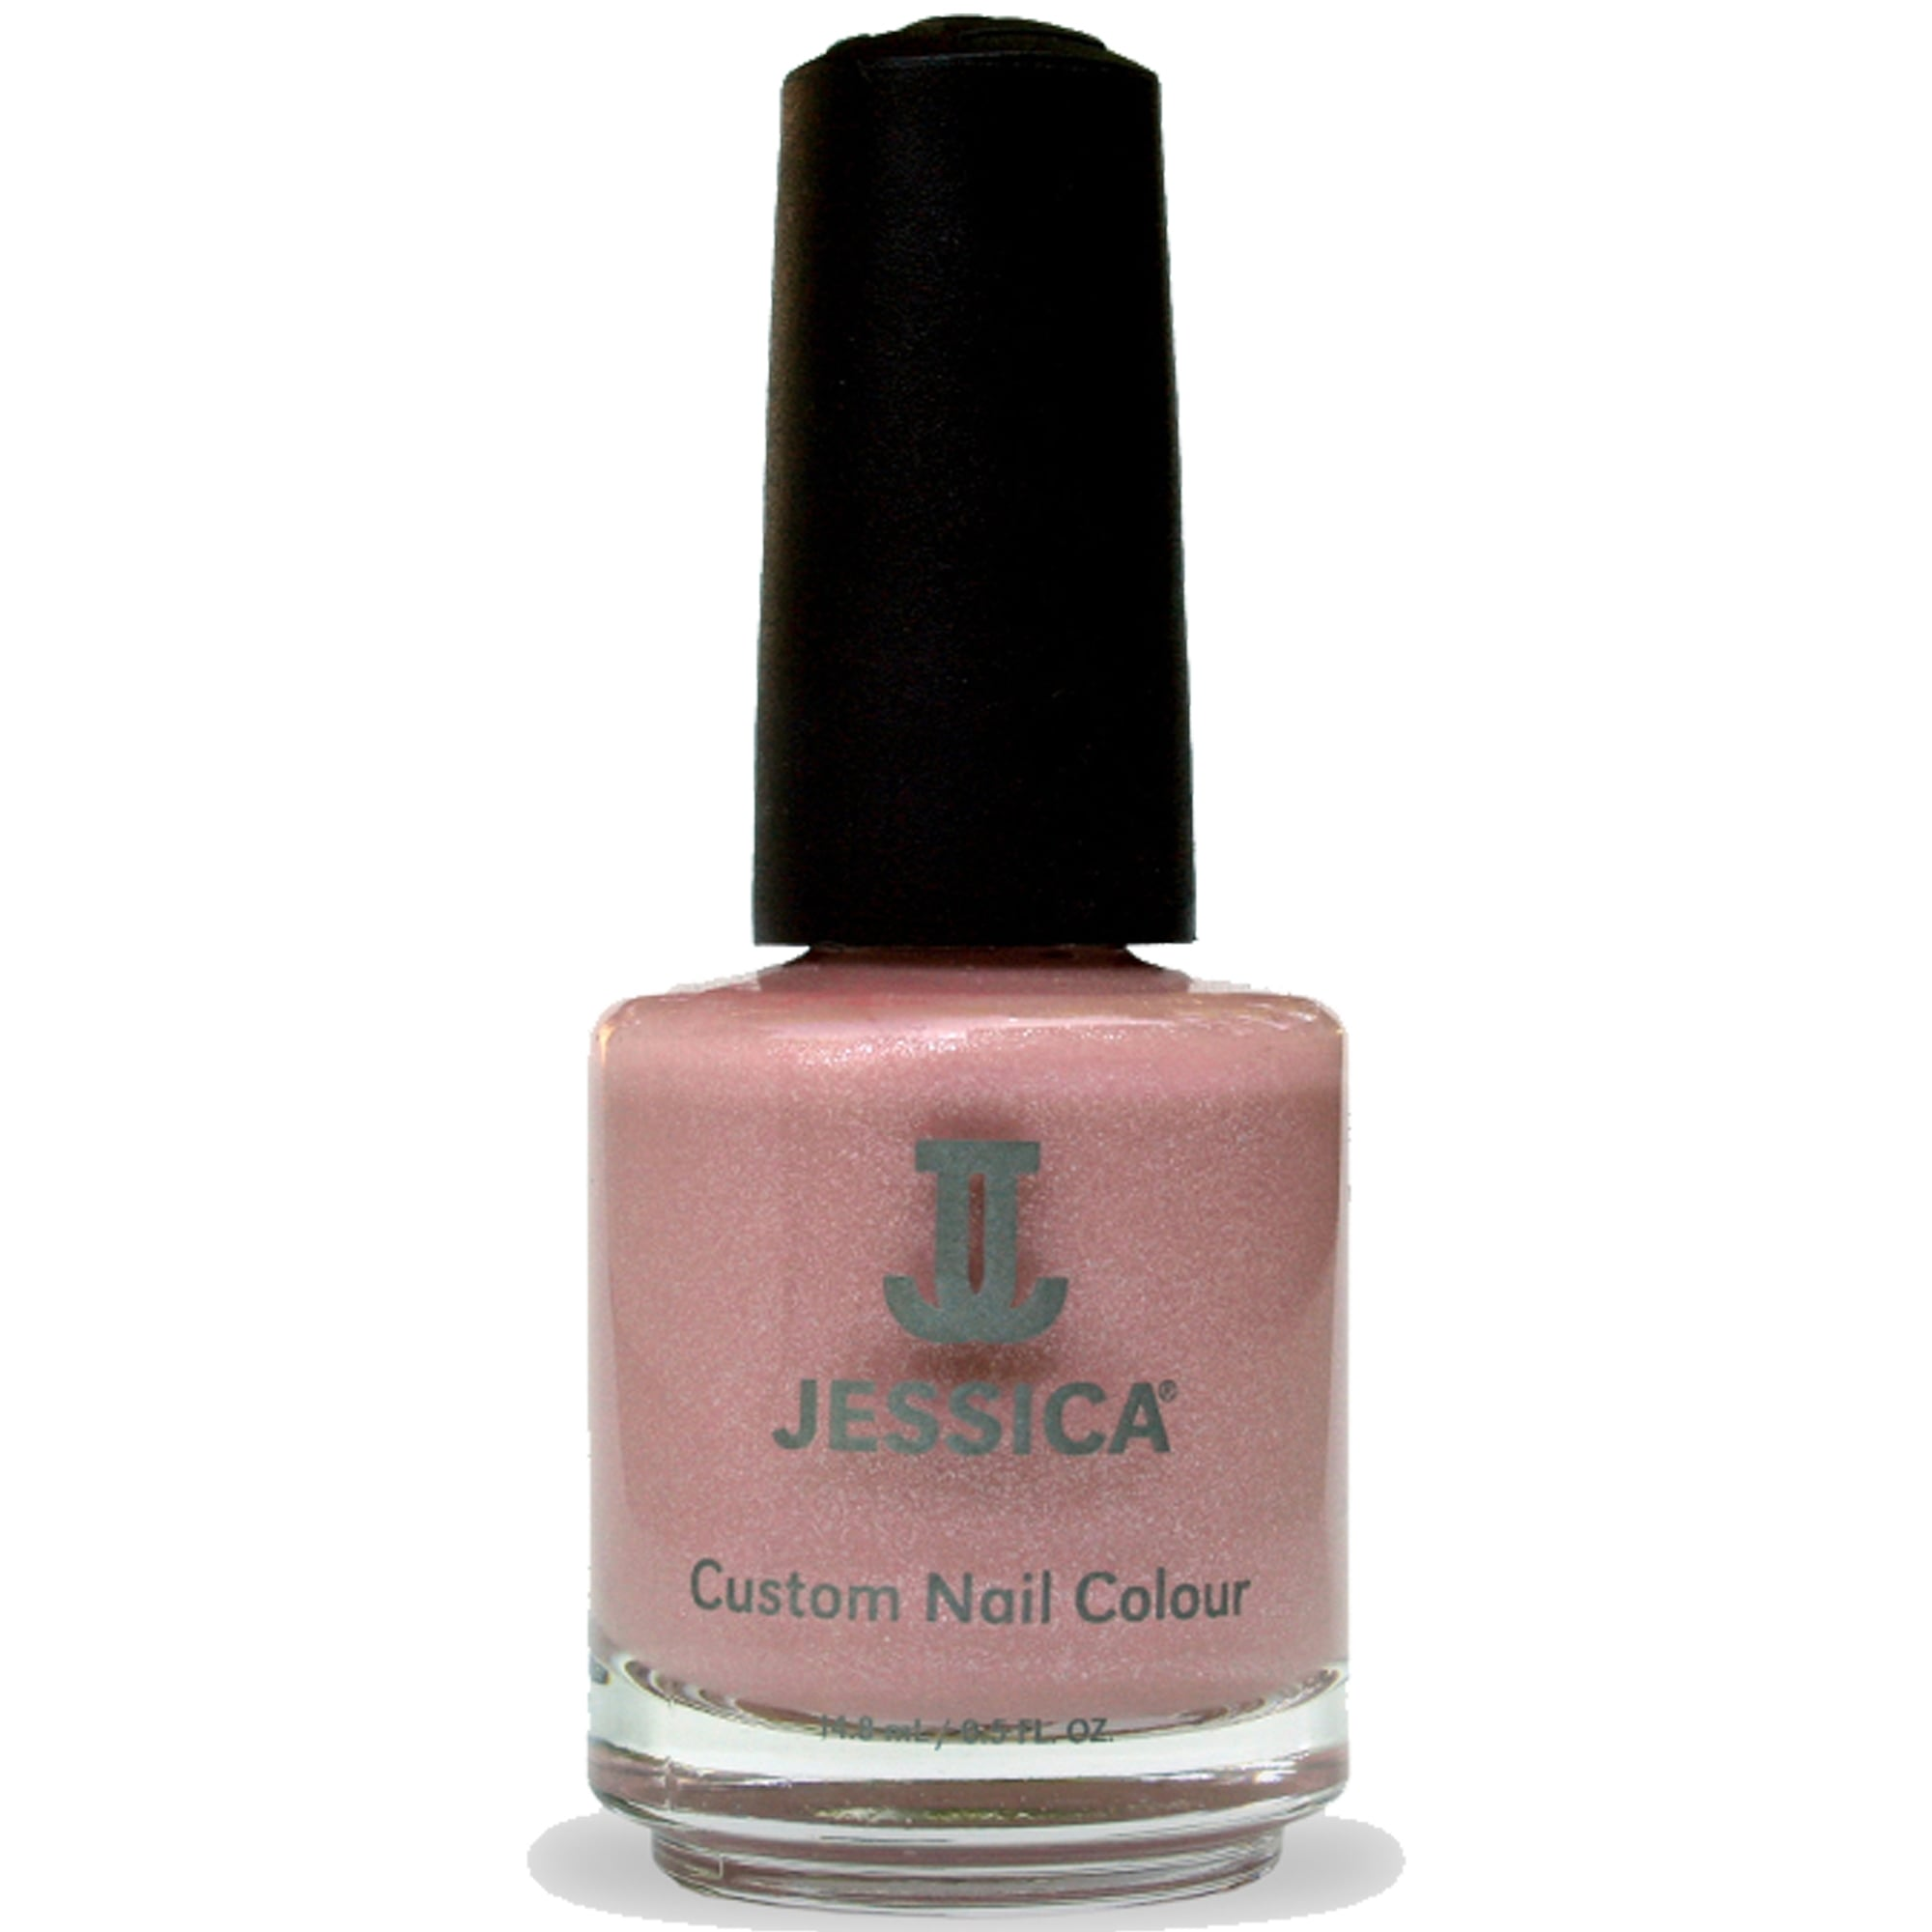 Jessica Tea Rose Nail Polish is available online at Nail Polish Direct